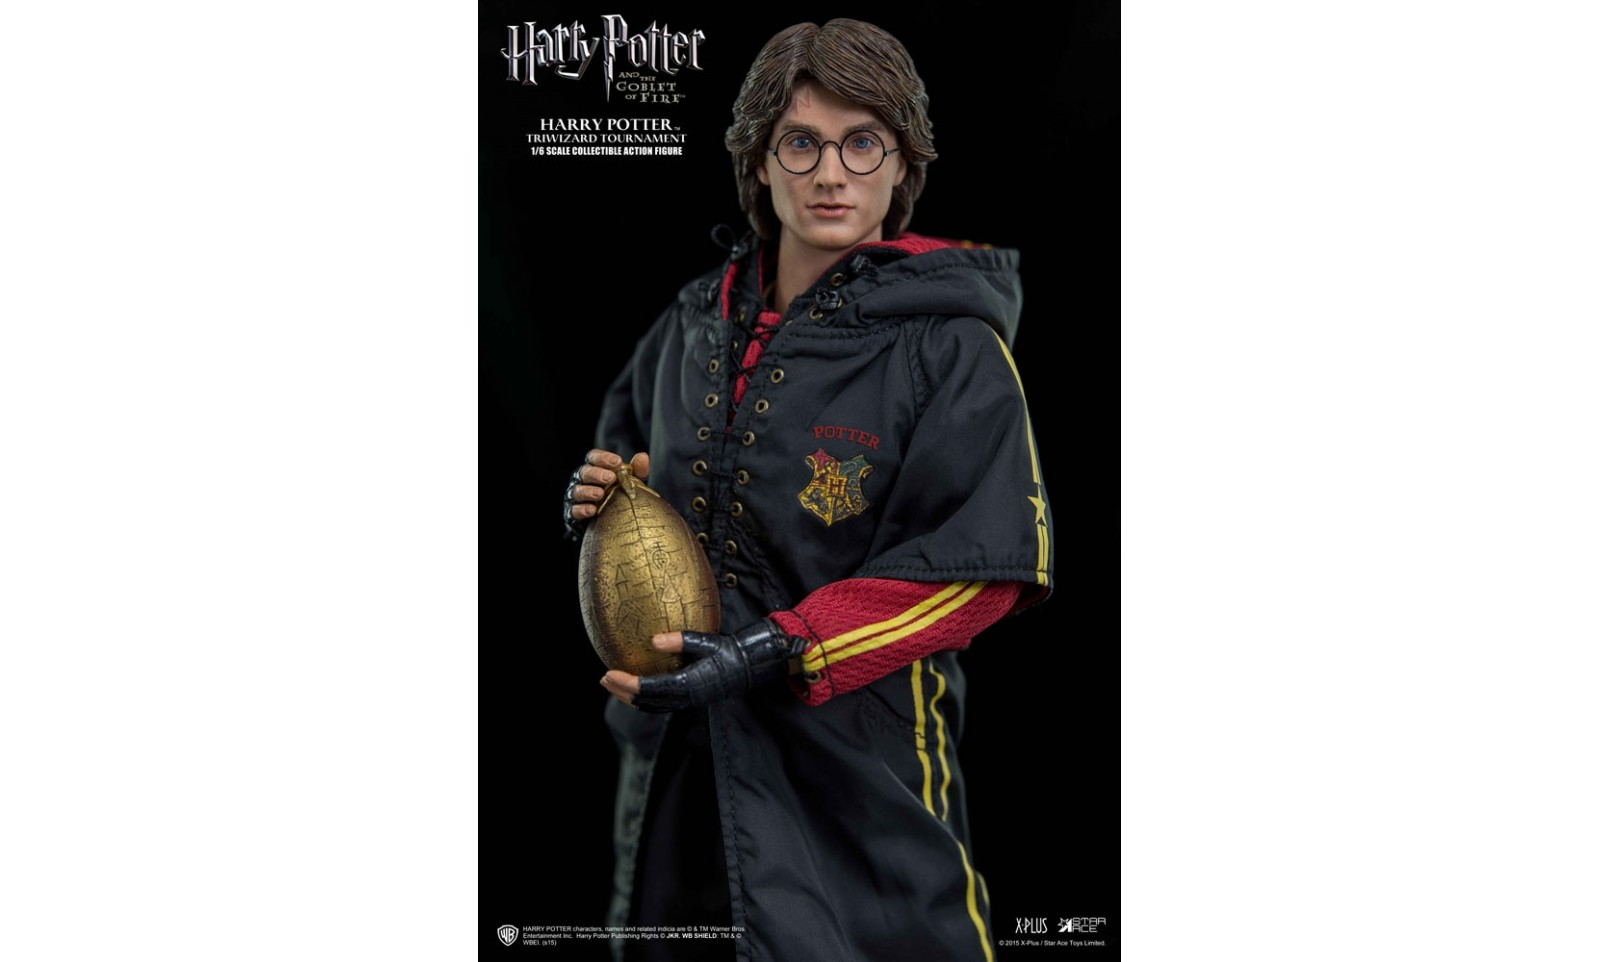 Harry potter et la coupe de feu my favourite movie figurine 1 6 harry potter tournoi des trois - Film harry potter et la coupe de feu ...